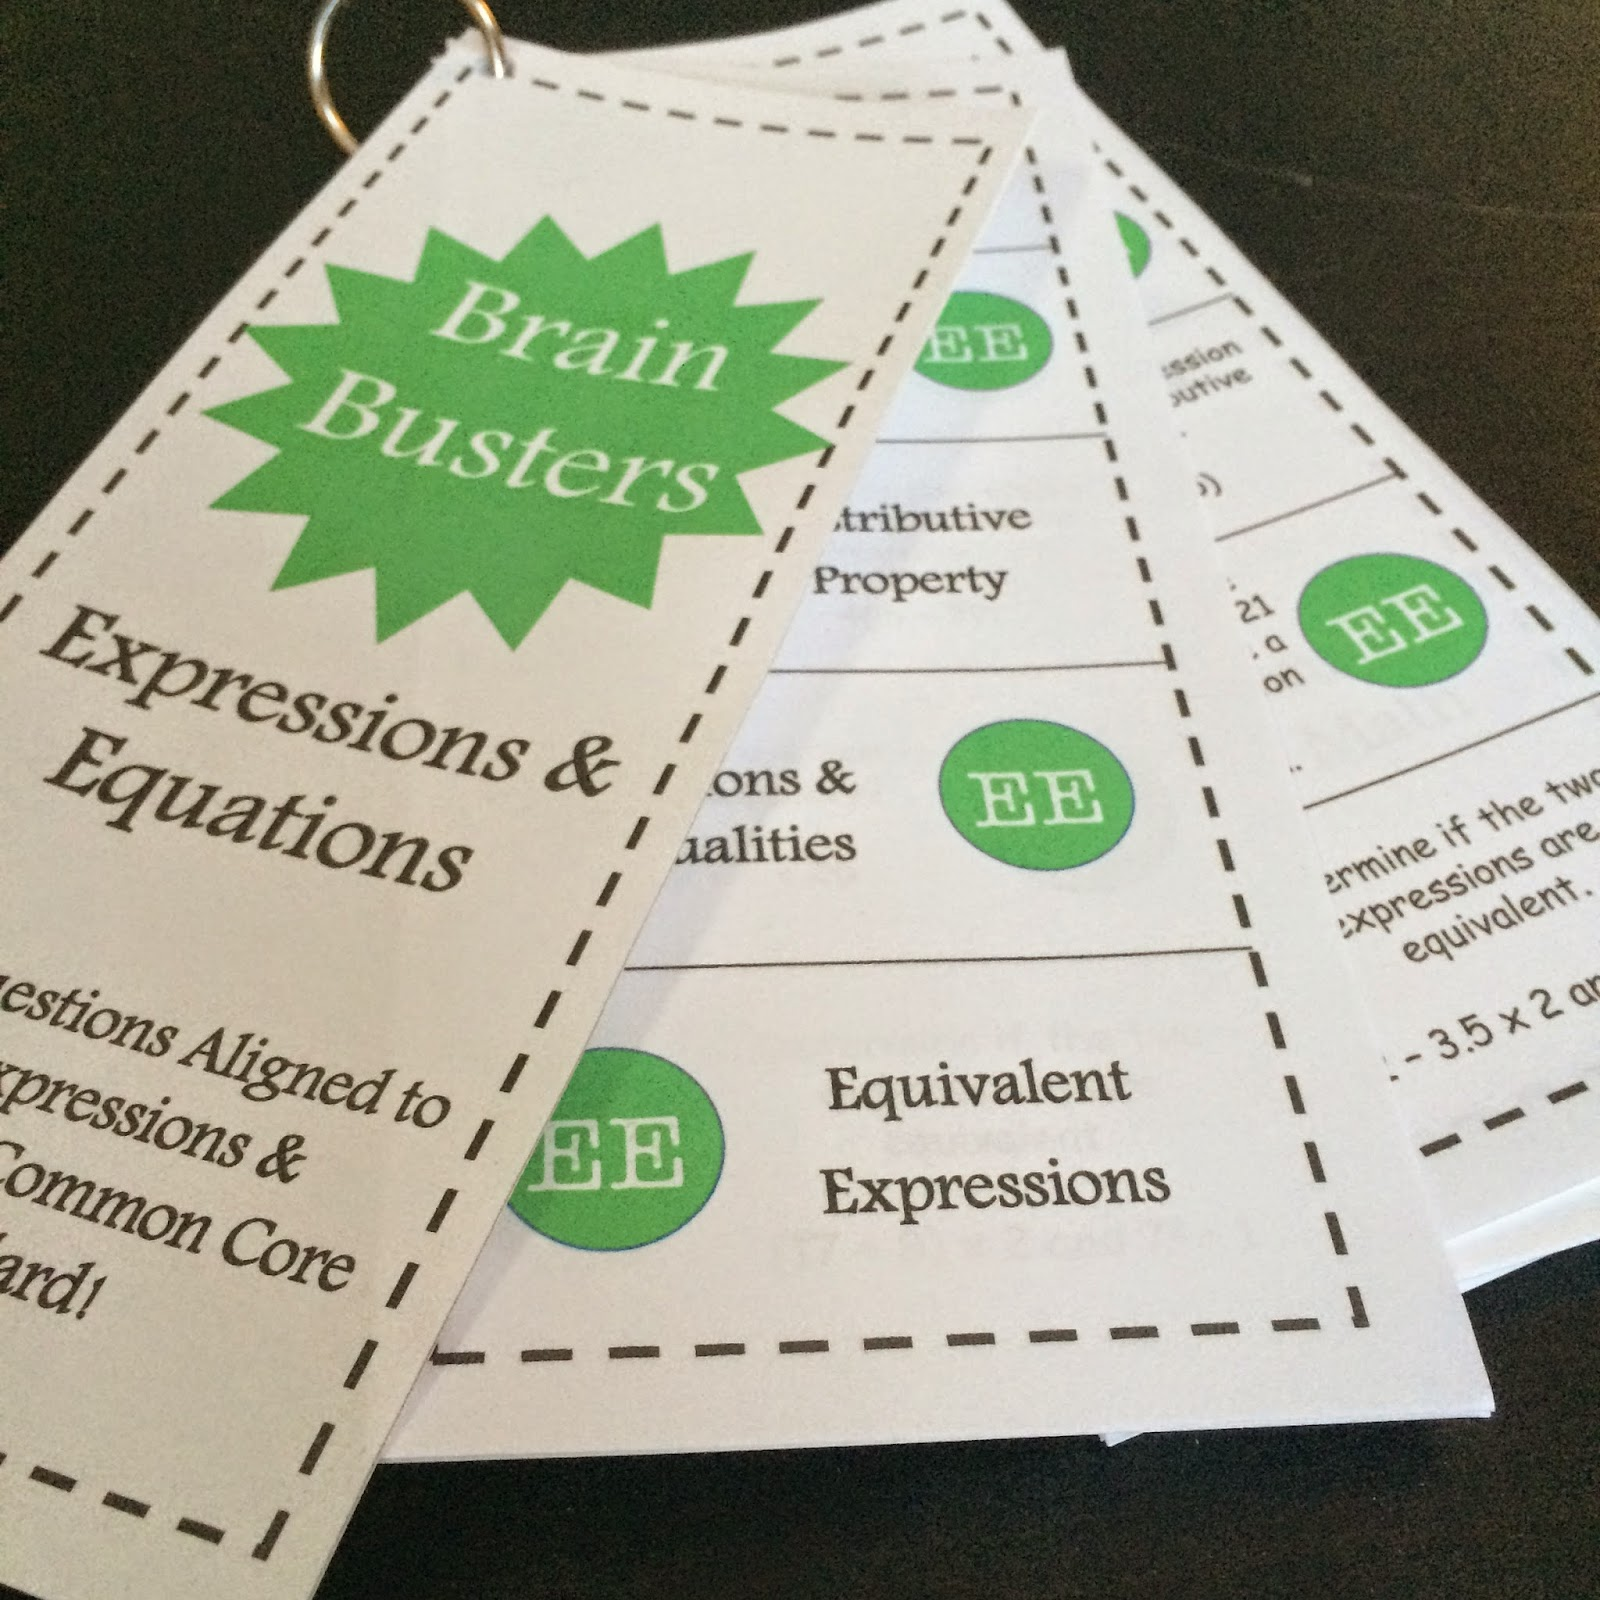 http://www.teacherspayteachers.com/Product/Math-Brain-Busters-Algebra-Expressions-Equations-1631608